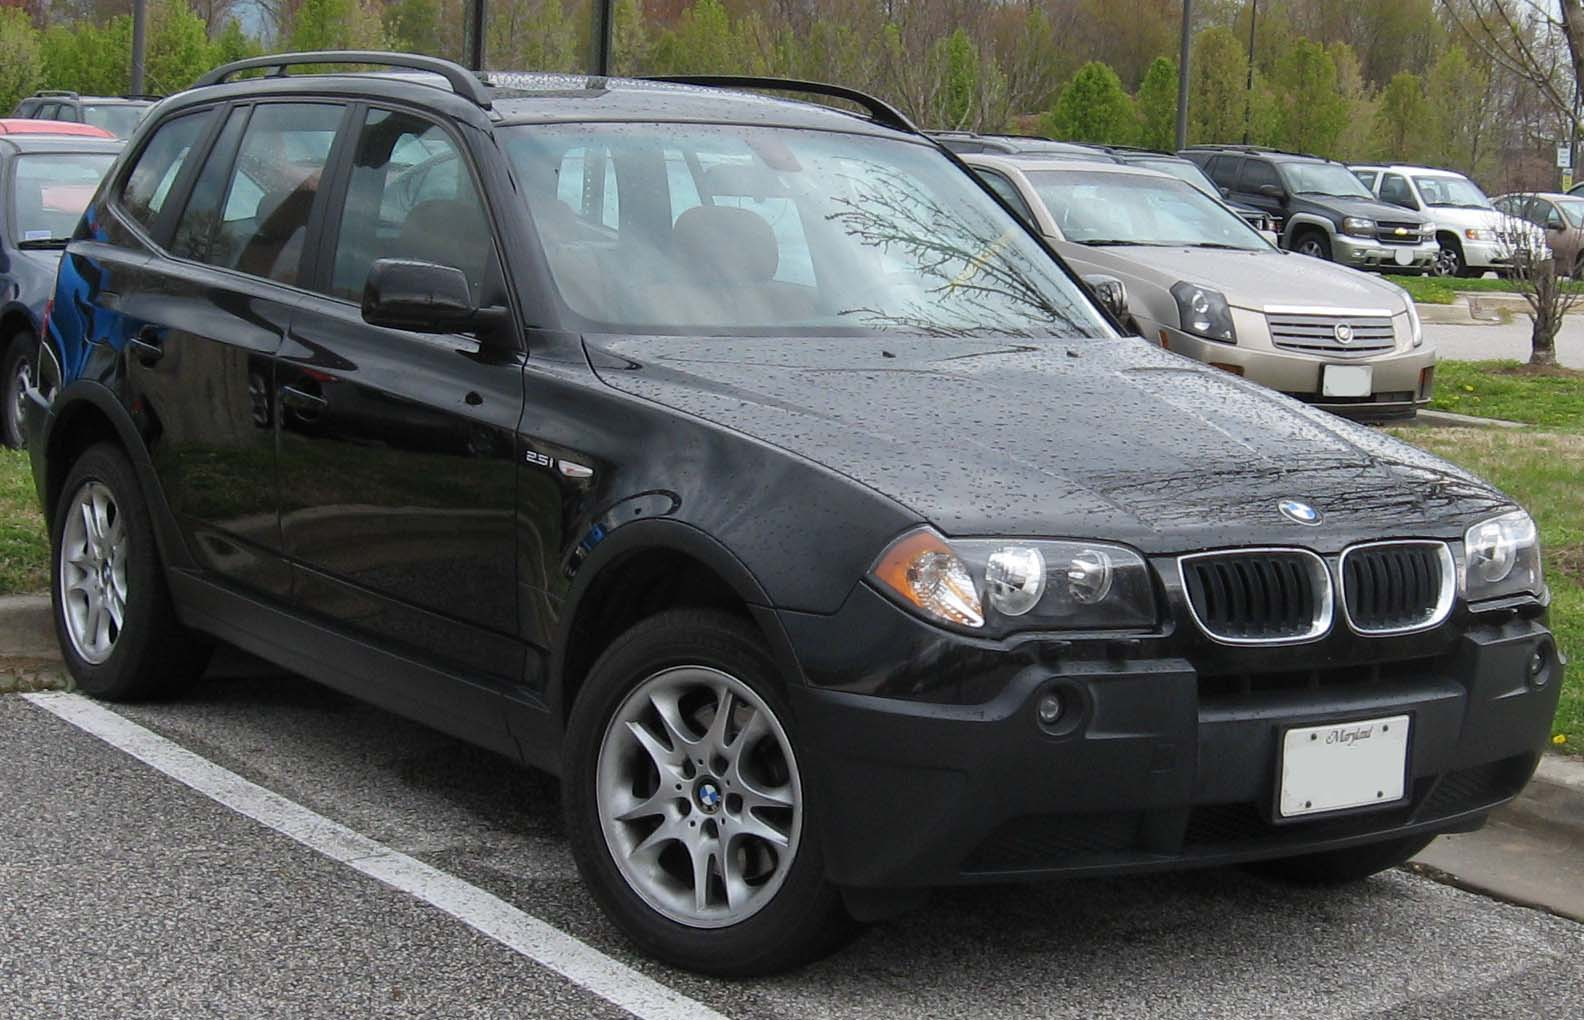 file bmw x3 2 wikimedia commons. Black Bedroom Furniture Sets. Home Design Ideas